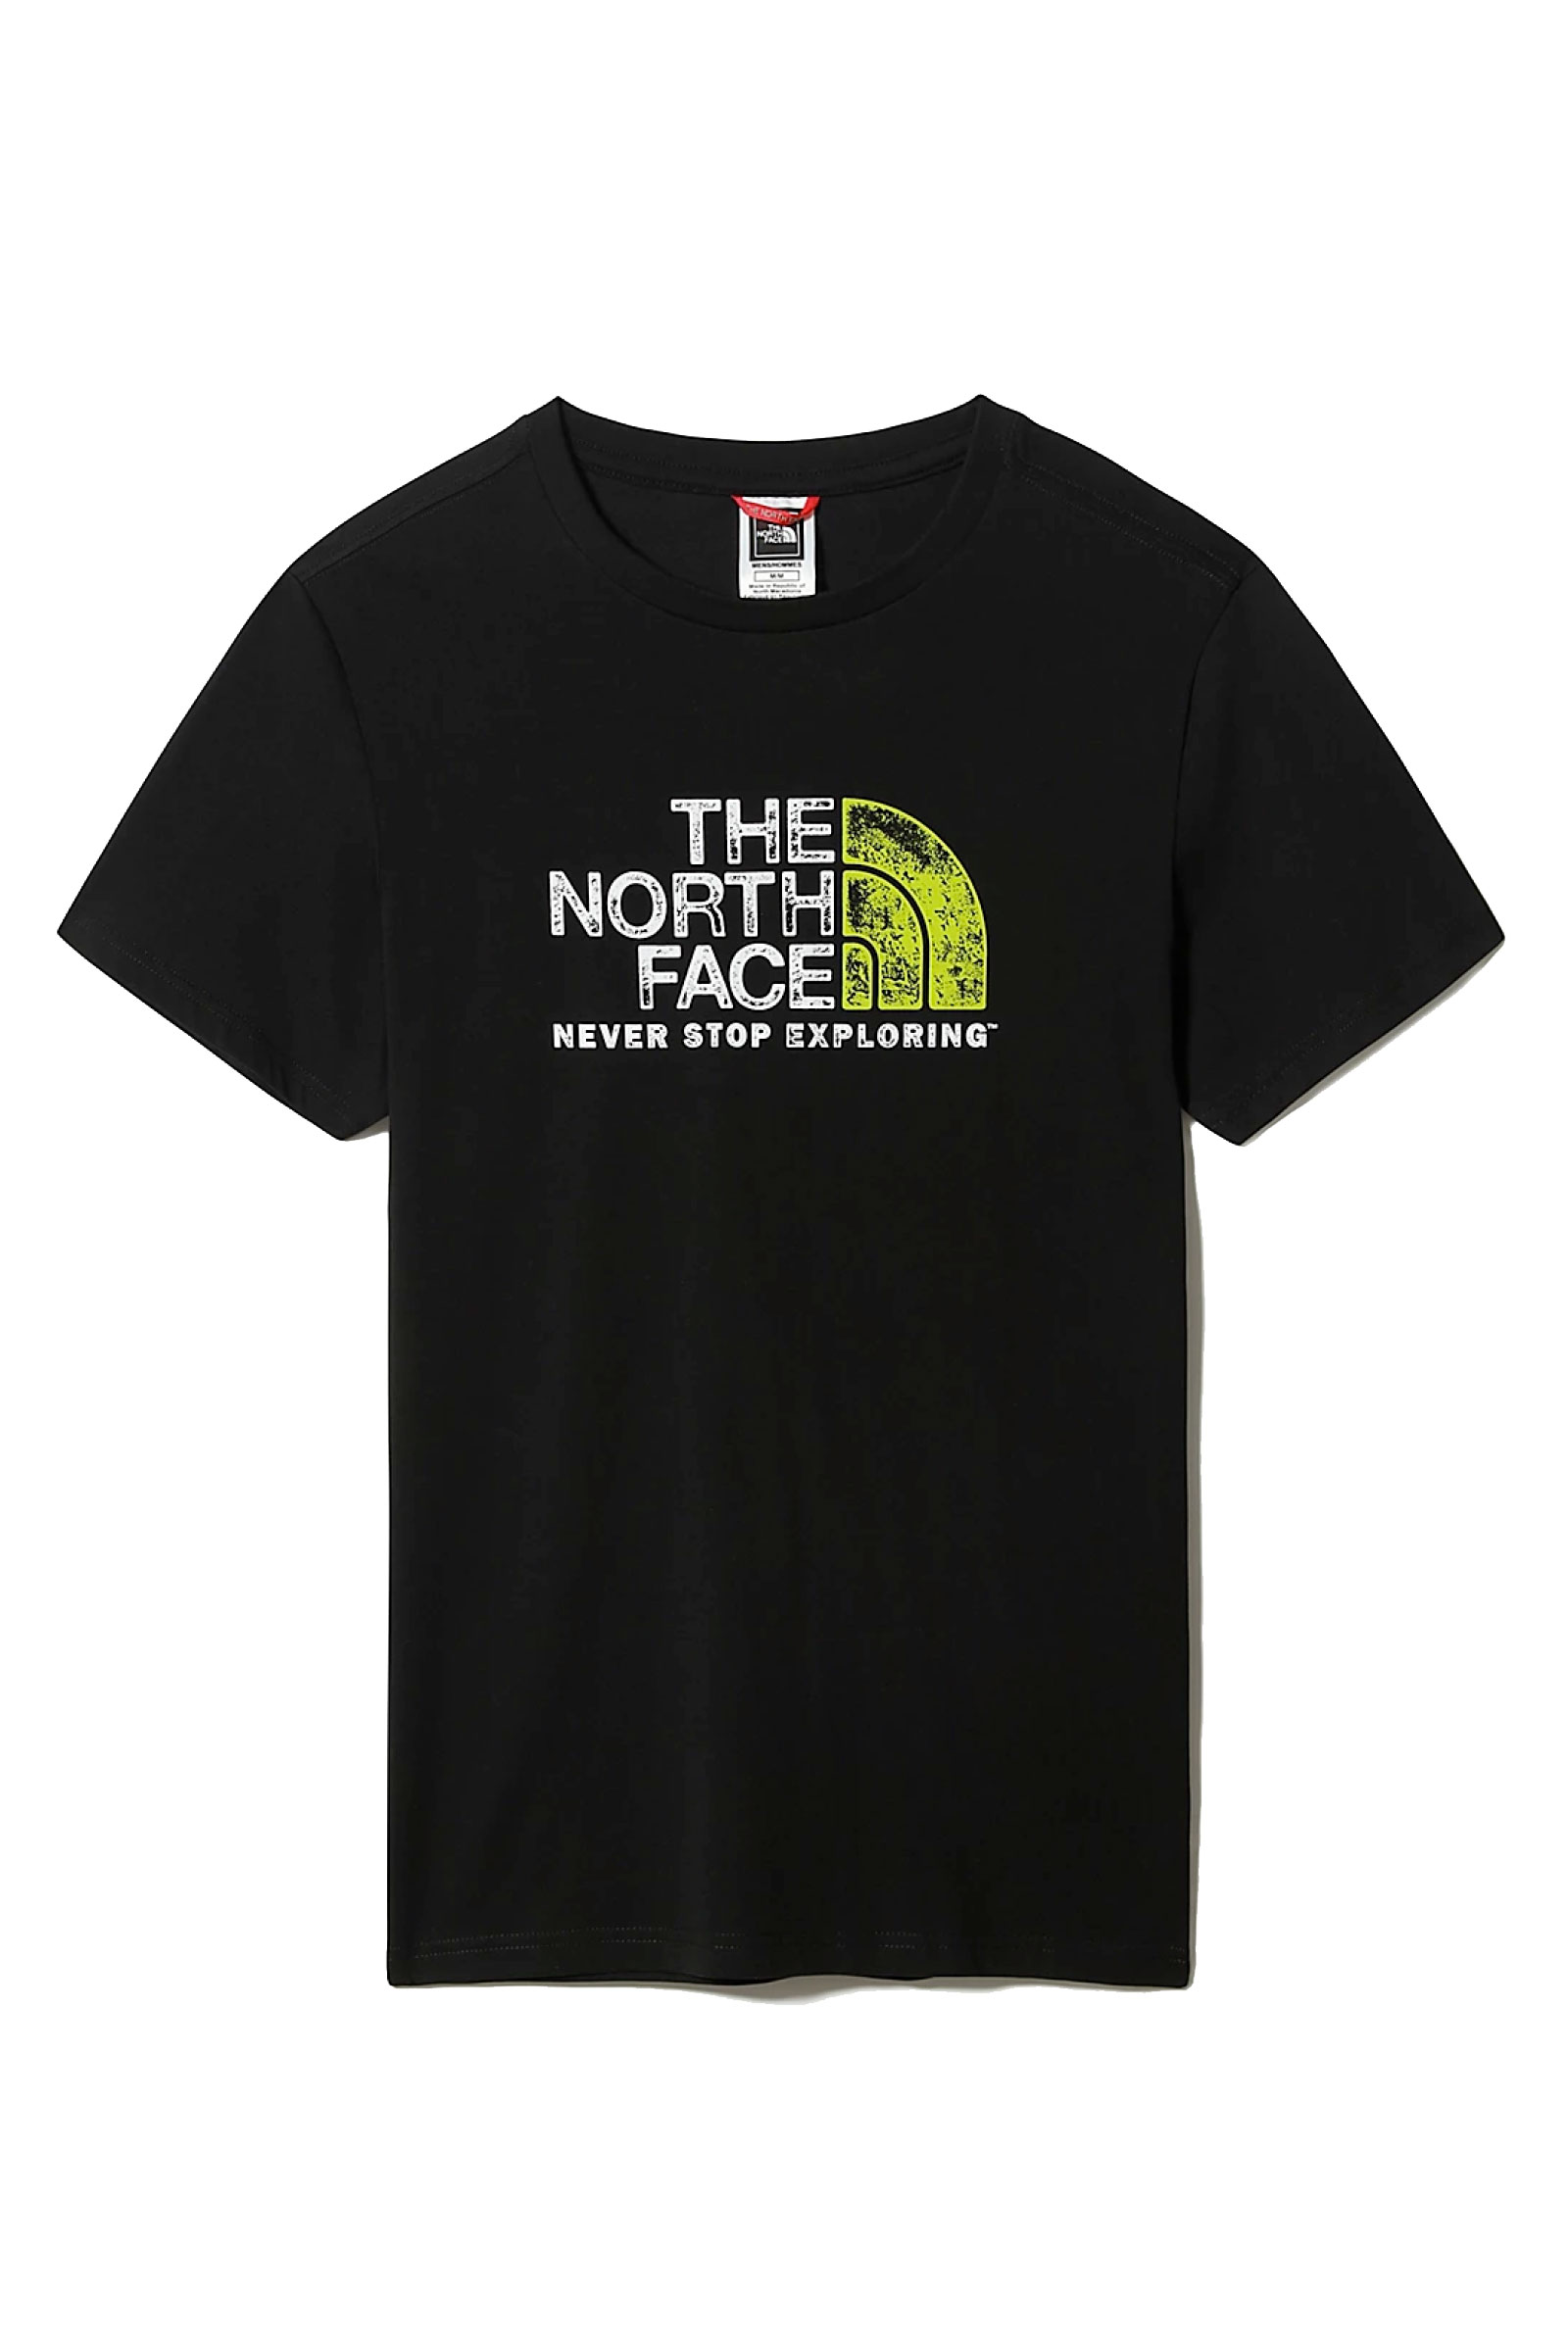 THE NORTH FACE   T-Shirt   NF0A4M68KY41